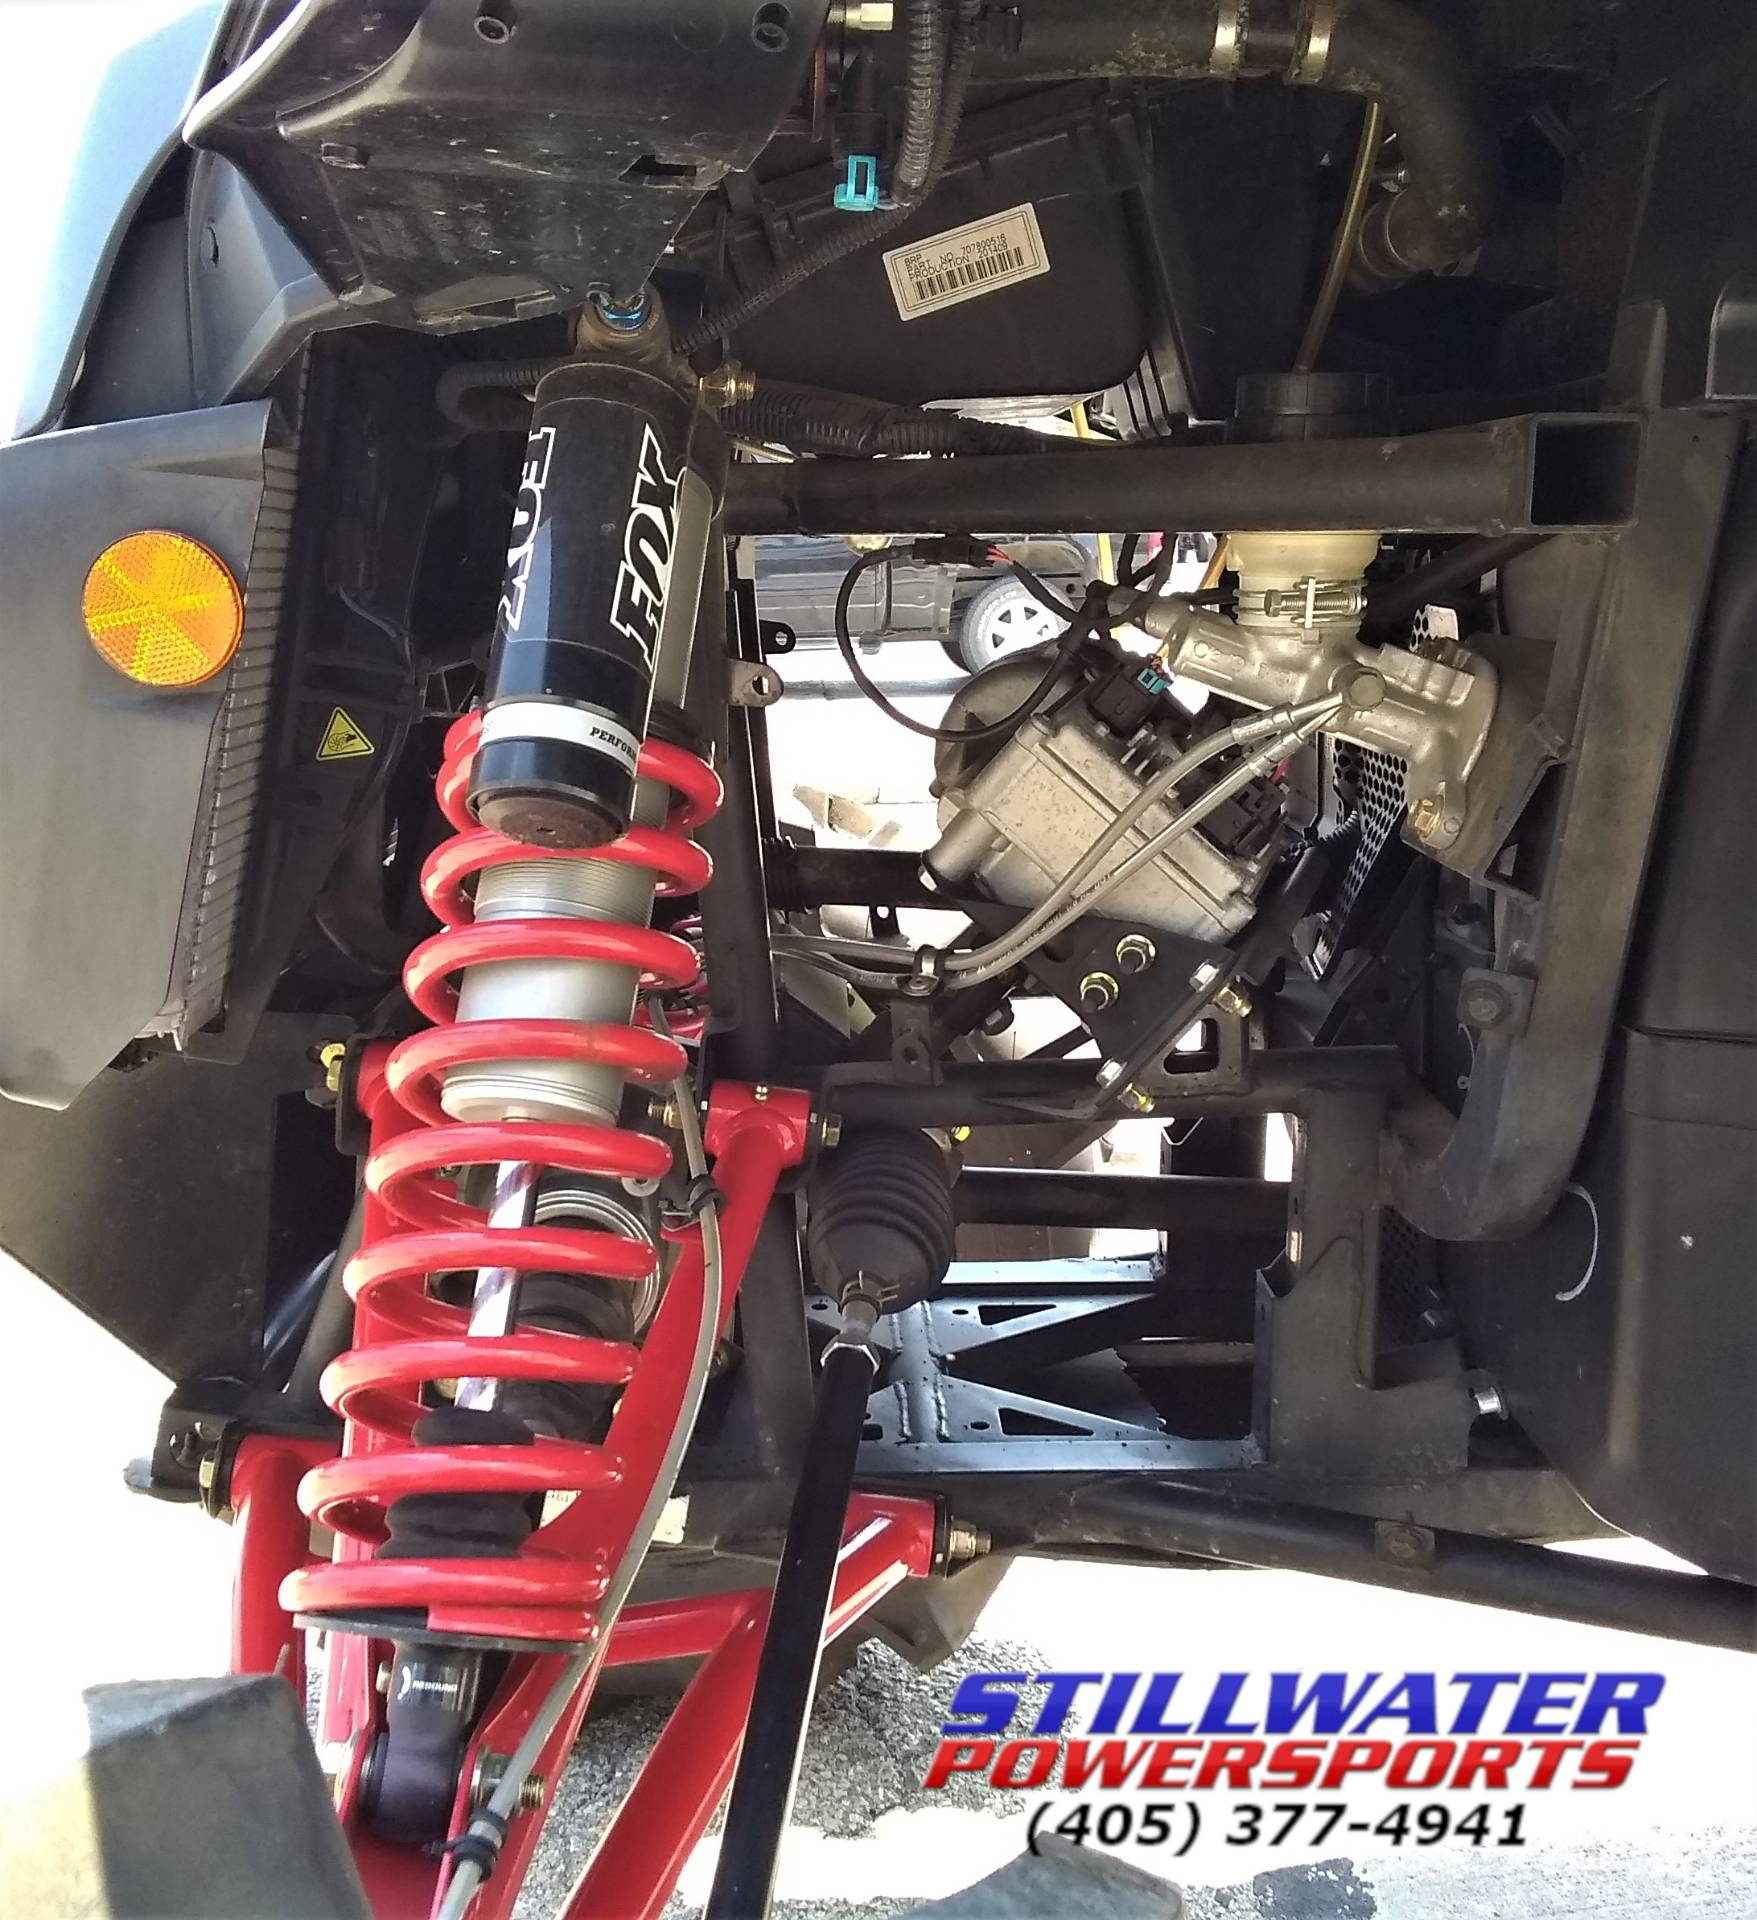 2015 Can-Am Maverick™ Max X® rs DPS™ 1000R in Stillwater, Oklahoma - Photo 5